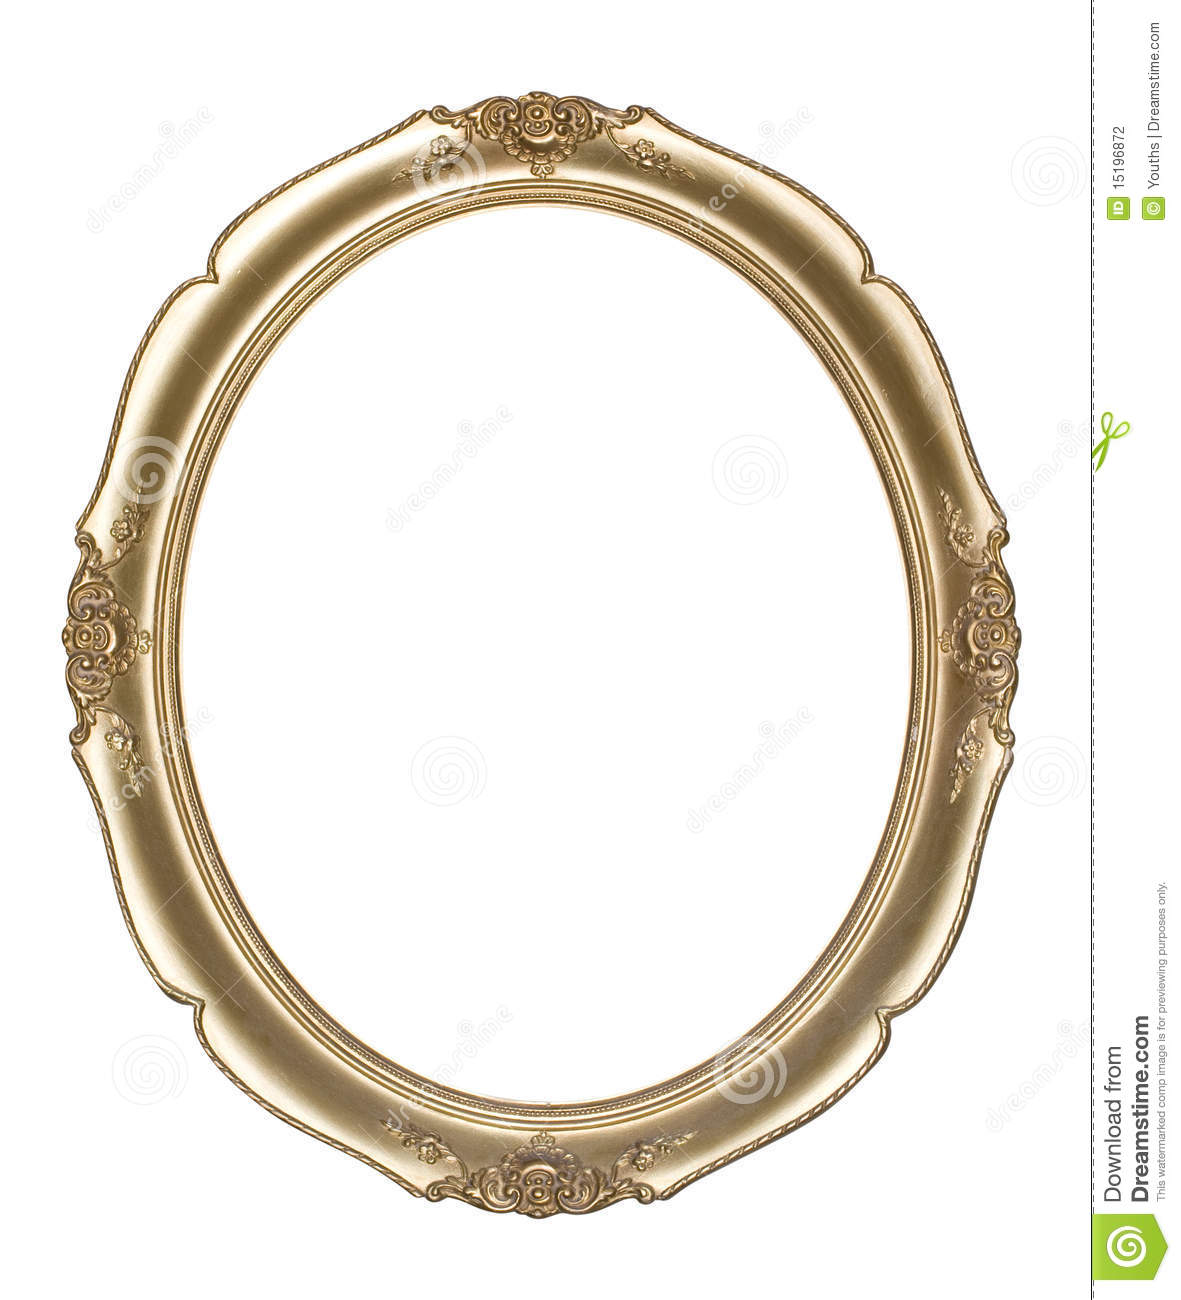 Stock Photography Oval Photo Frame Clipping Path Image15196872 as well Stock Photo Detail Pink Woven Handicraft Knit Sweater Woolen Design Texture Clew Fabric Background Image37965790 together with Stock Illustration South American Traditional Textile Geometric Pattern Birds Image41804529 moreover Scandi 3 Christmas Holiday Nordic Design Makower Uk Fabric Scandinavian Reindeer Border Stripe Red And Cream further 70 Diy Hair Accessories. on animals fabric designs